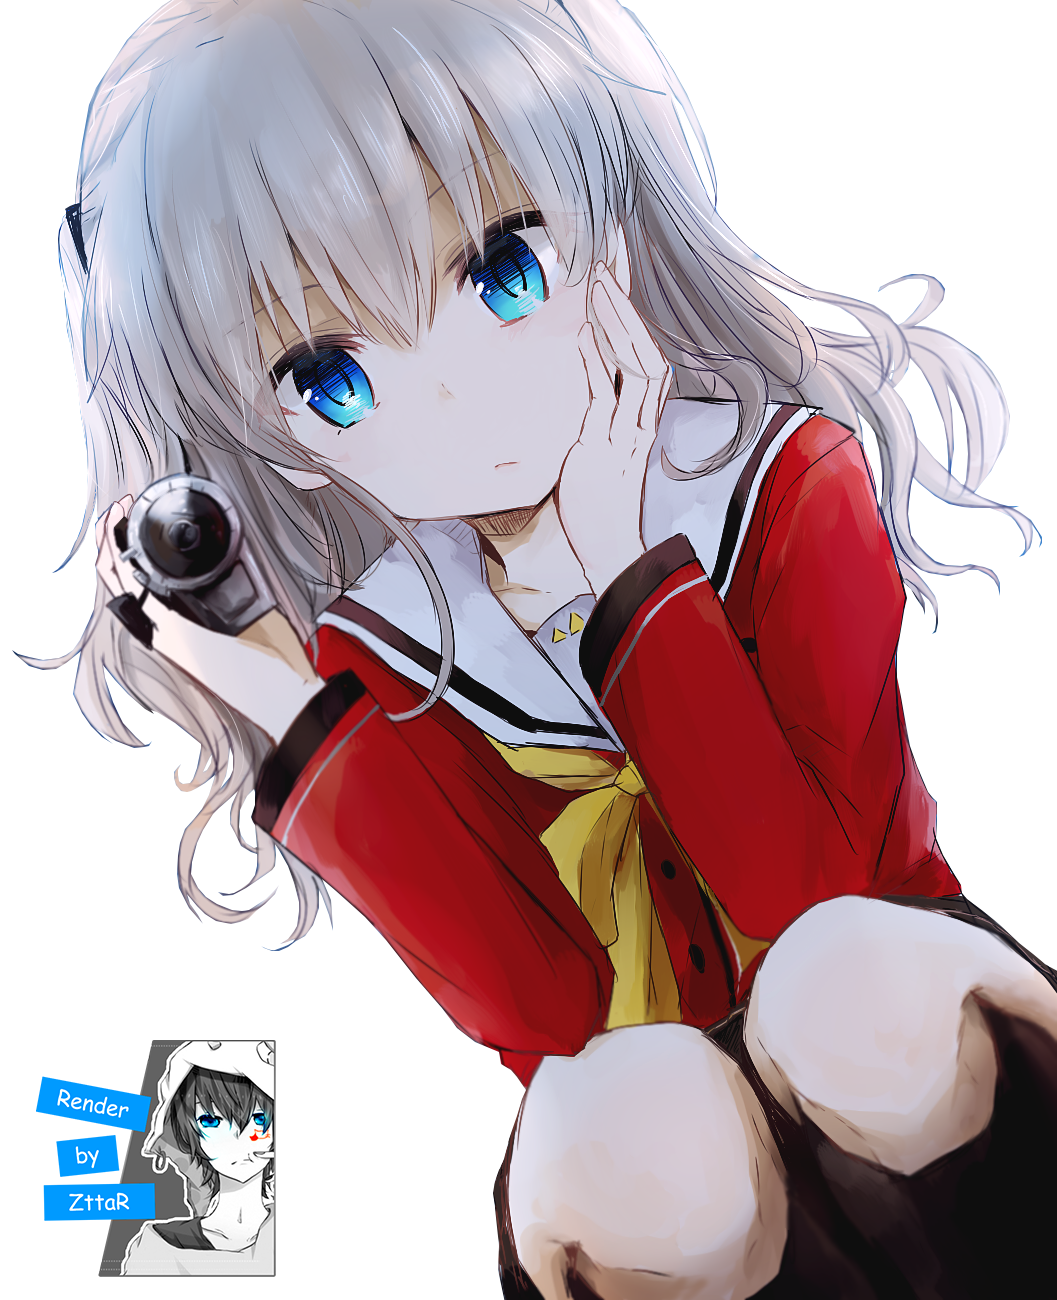 Render Tomori Nao looking